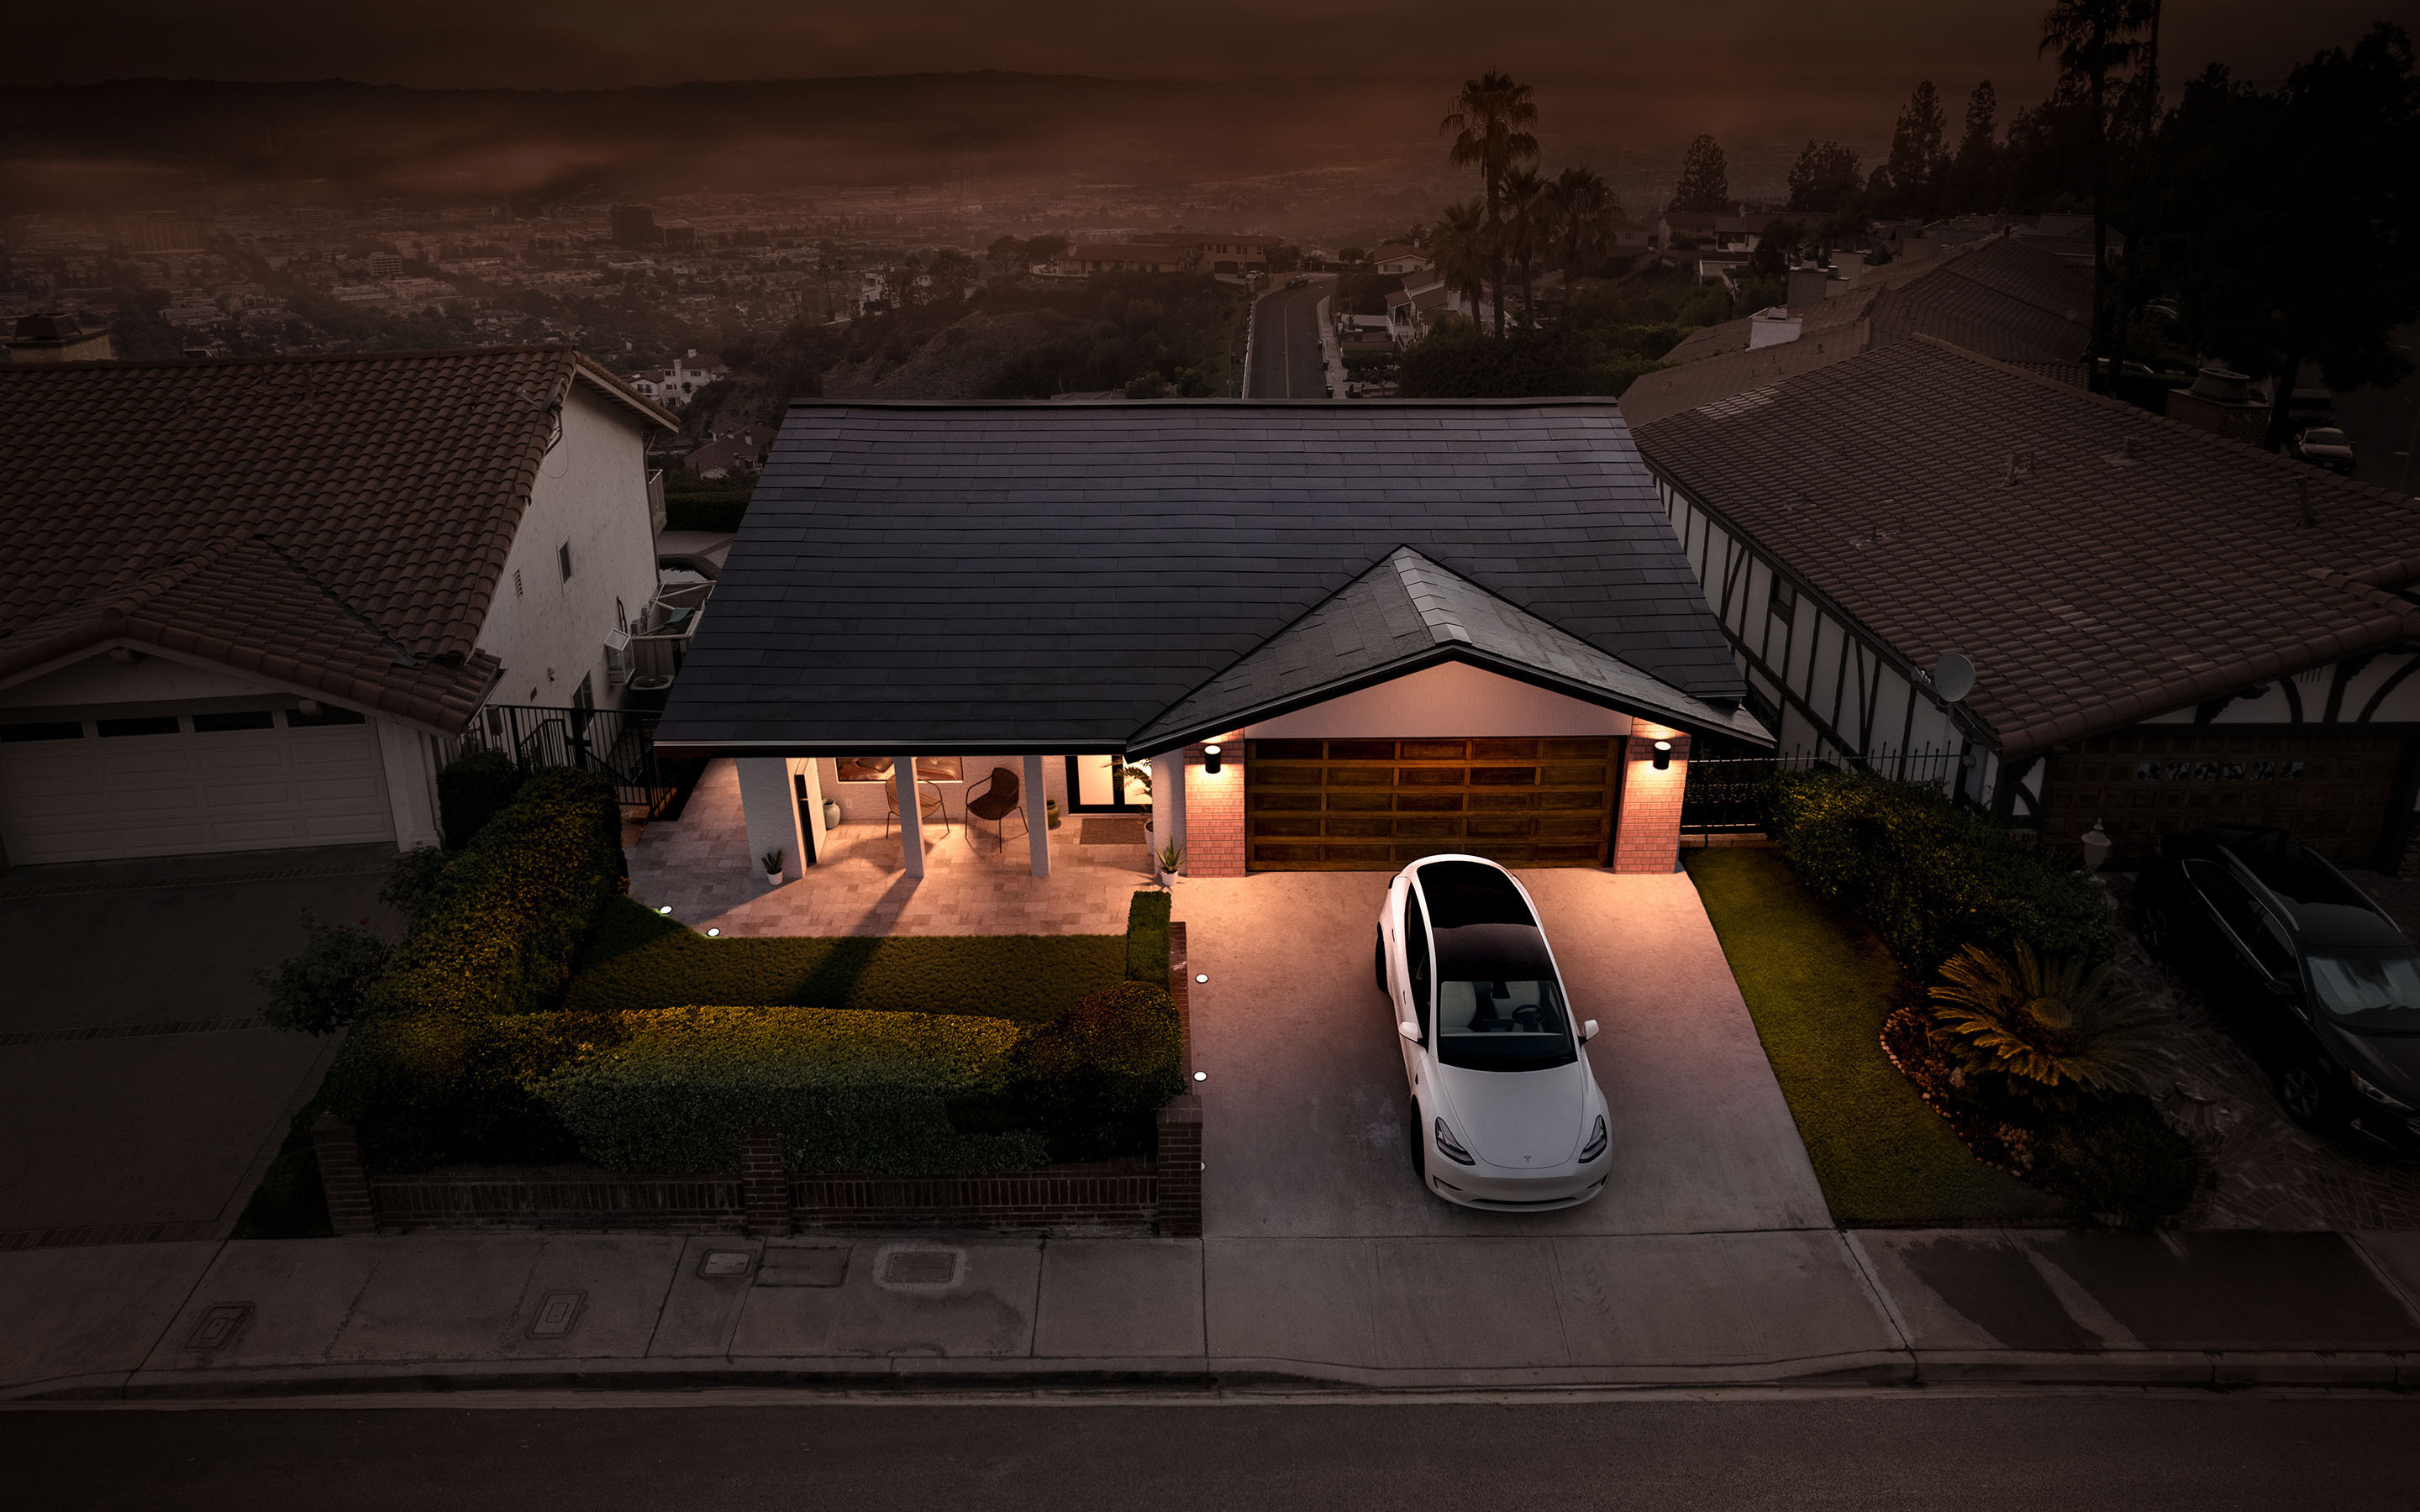 Solar Roof on single story home with white Model 3 in driveway